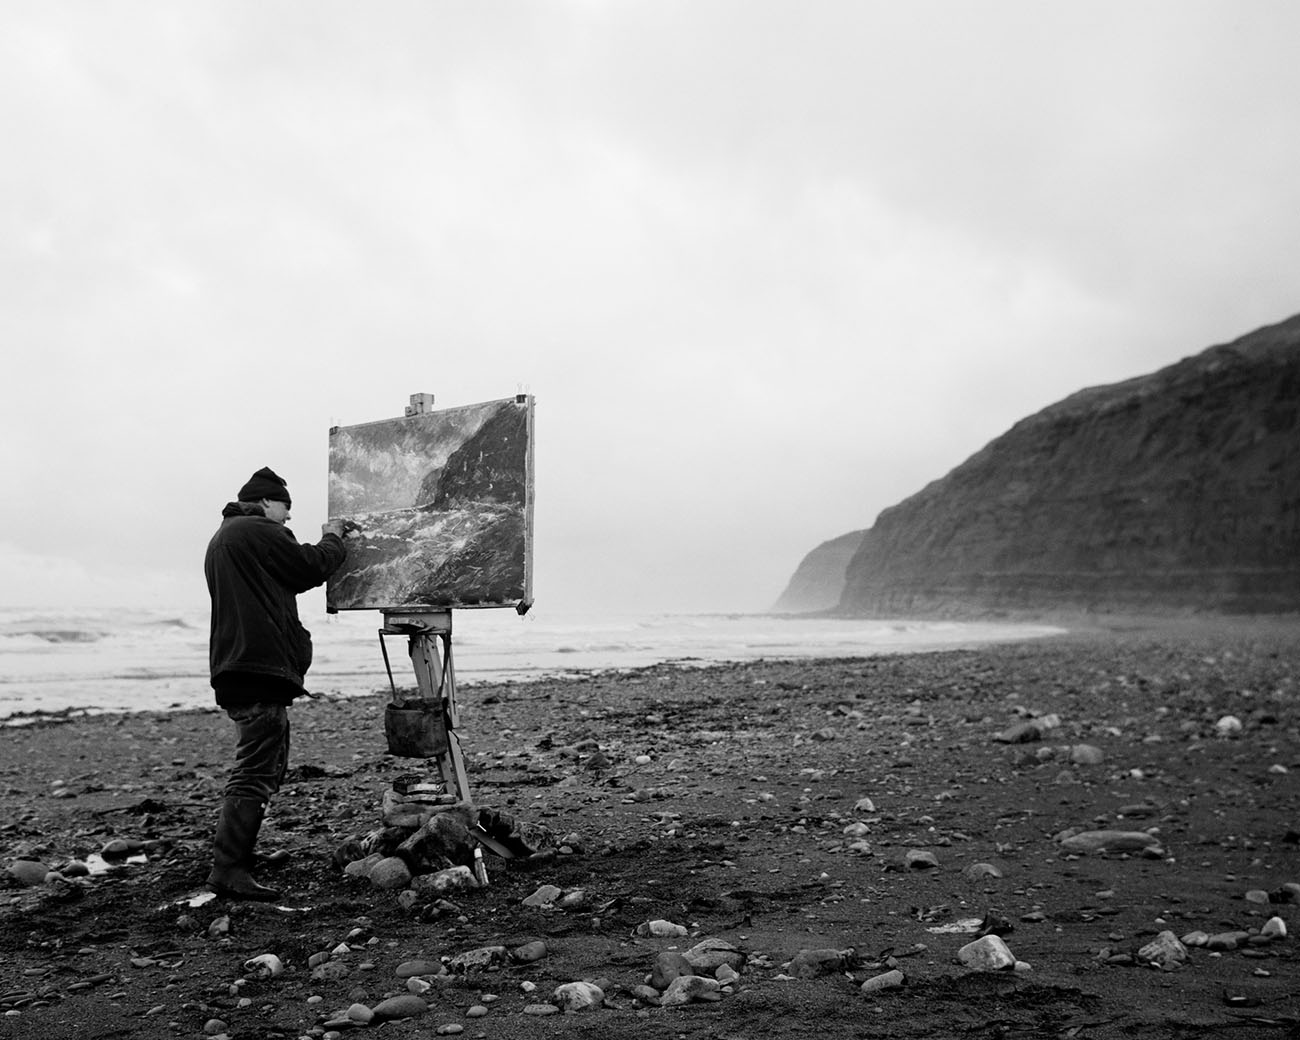 At left is a man, bundled up, painting a landscape on the shore of the beach.